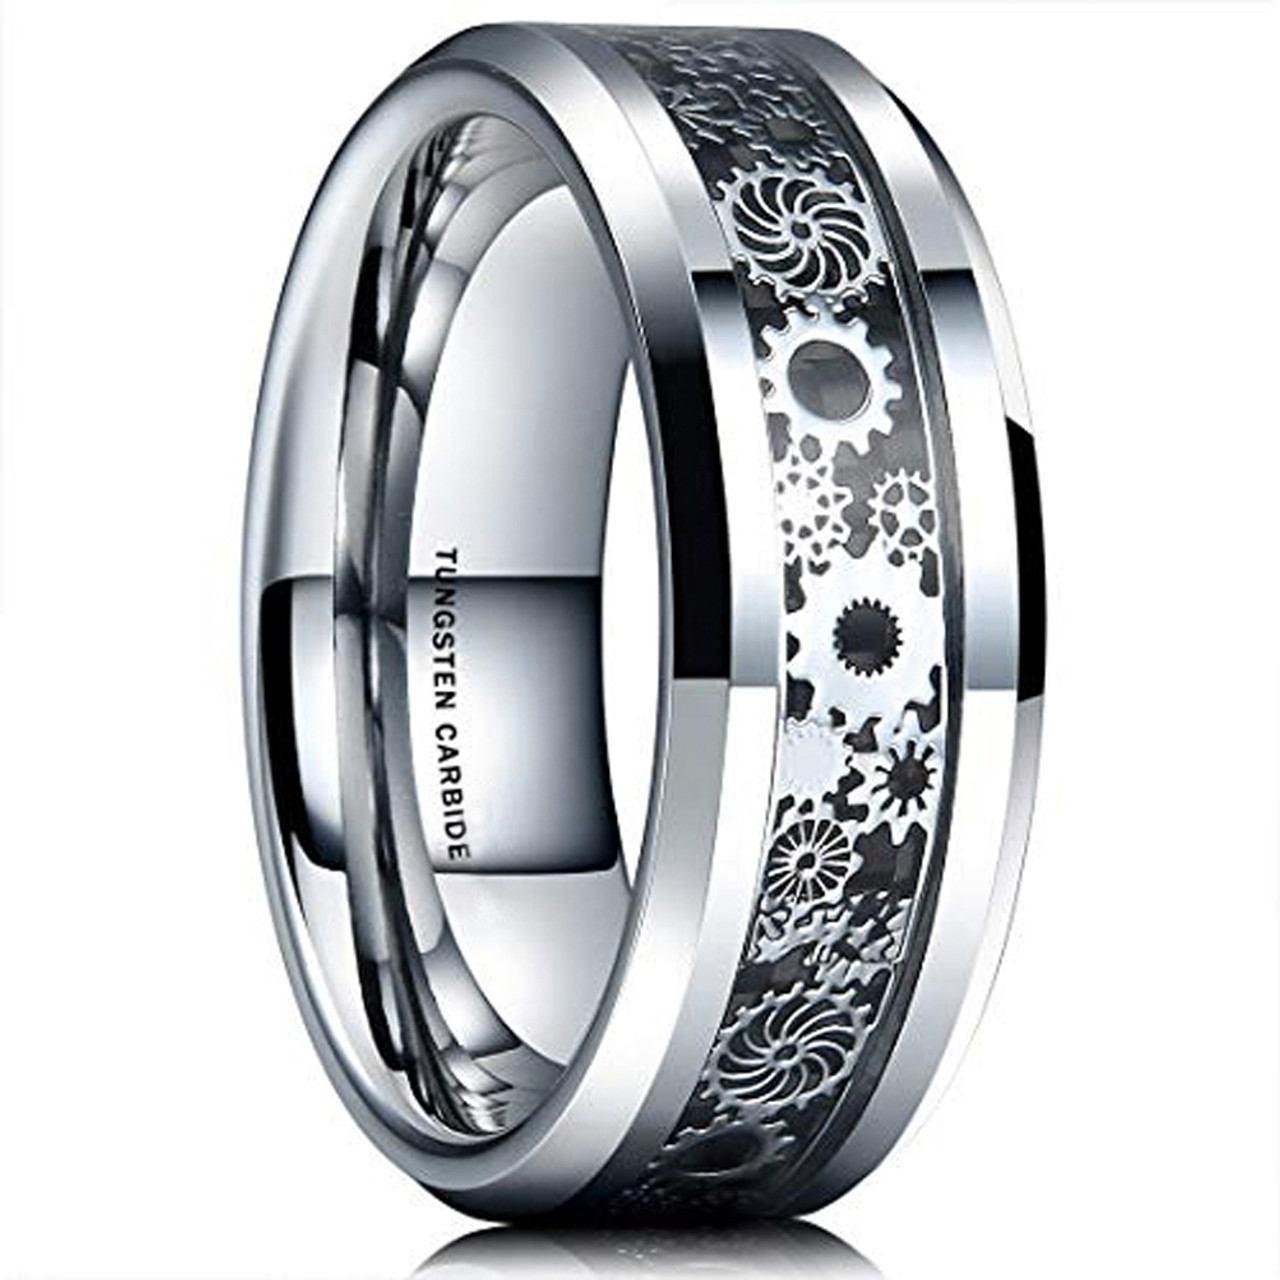 871d2fd5a0 (8mm) Unisex or Men's Tungsten Carbide Wedding Ring Band. Silver Band with  Silver